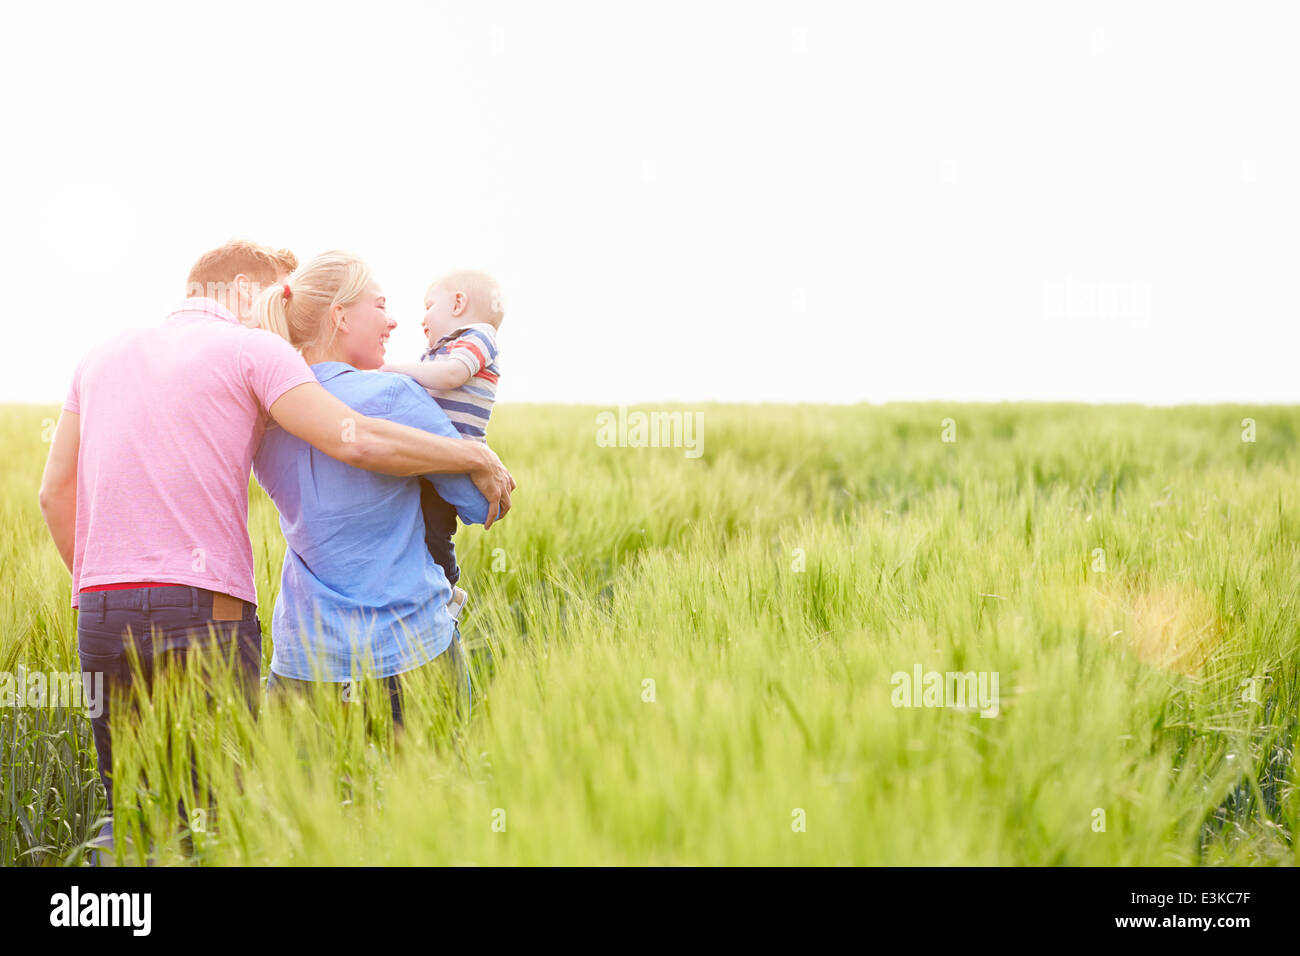 Family Walking In Field Carrying Young Baby Son - Stock Image